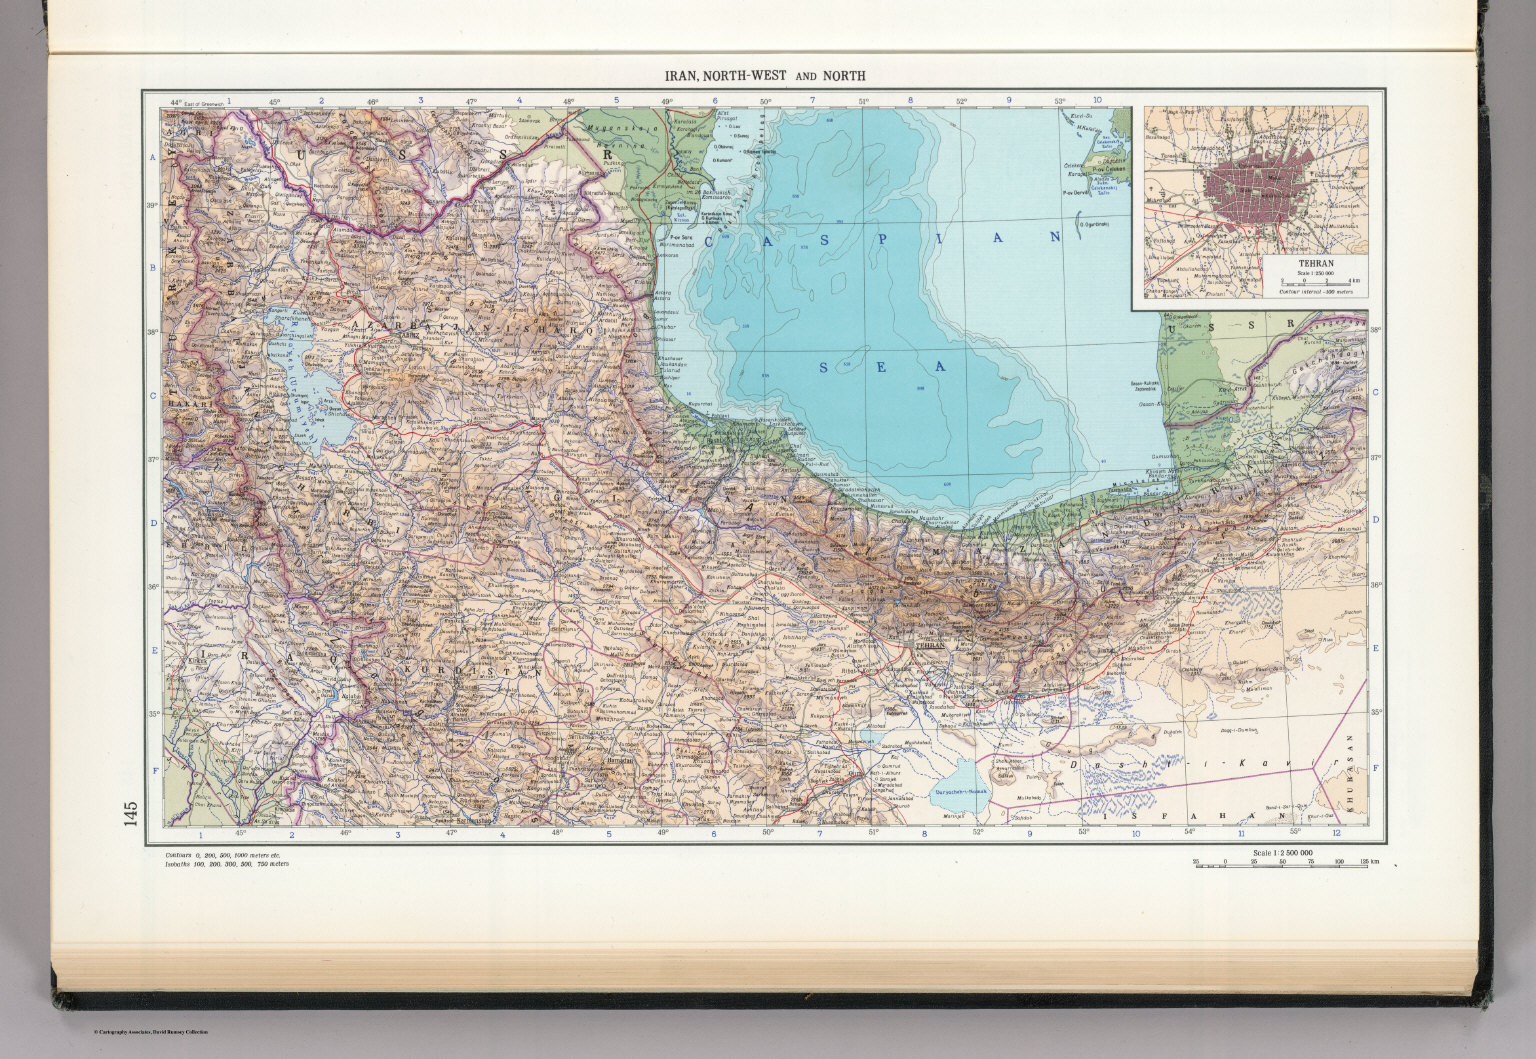 145 iran north west and north tehran the world atlas david iran north west and north tehran the world atlas gumiabroncs Image collections